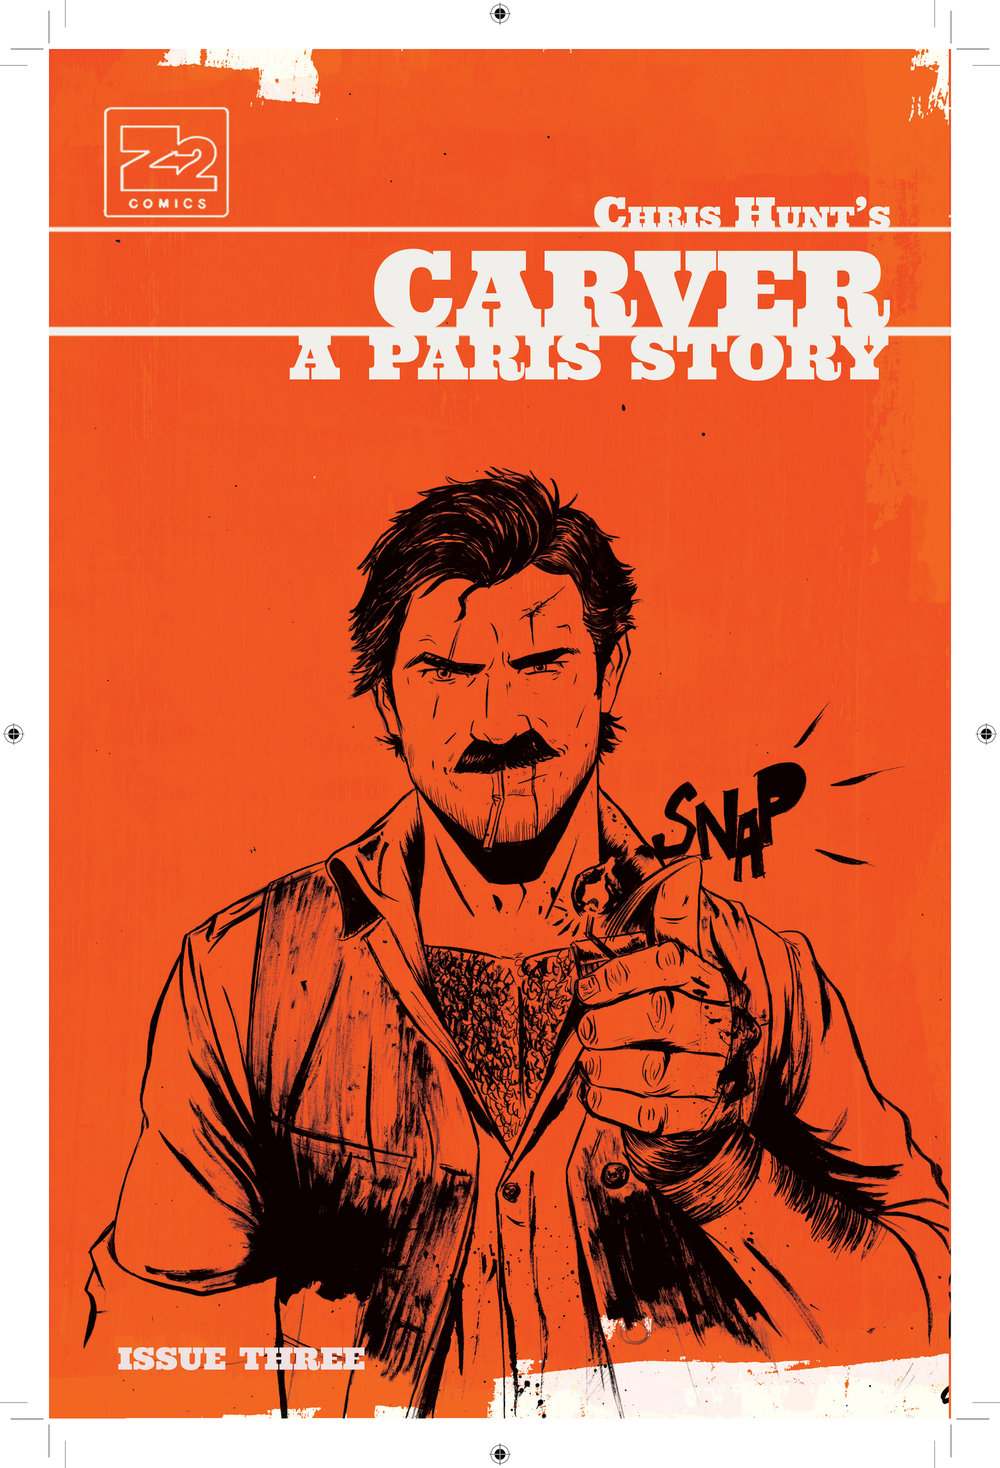 CARVER: A Paris Story Issue 3 (Final)